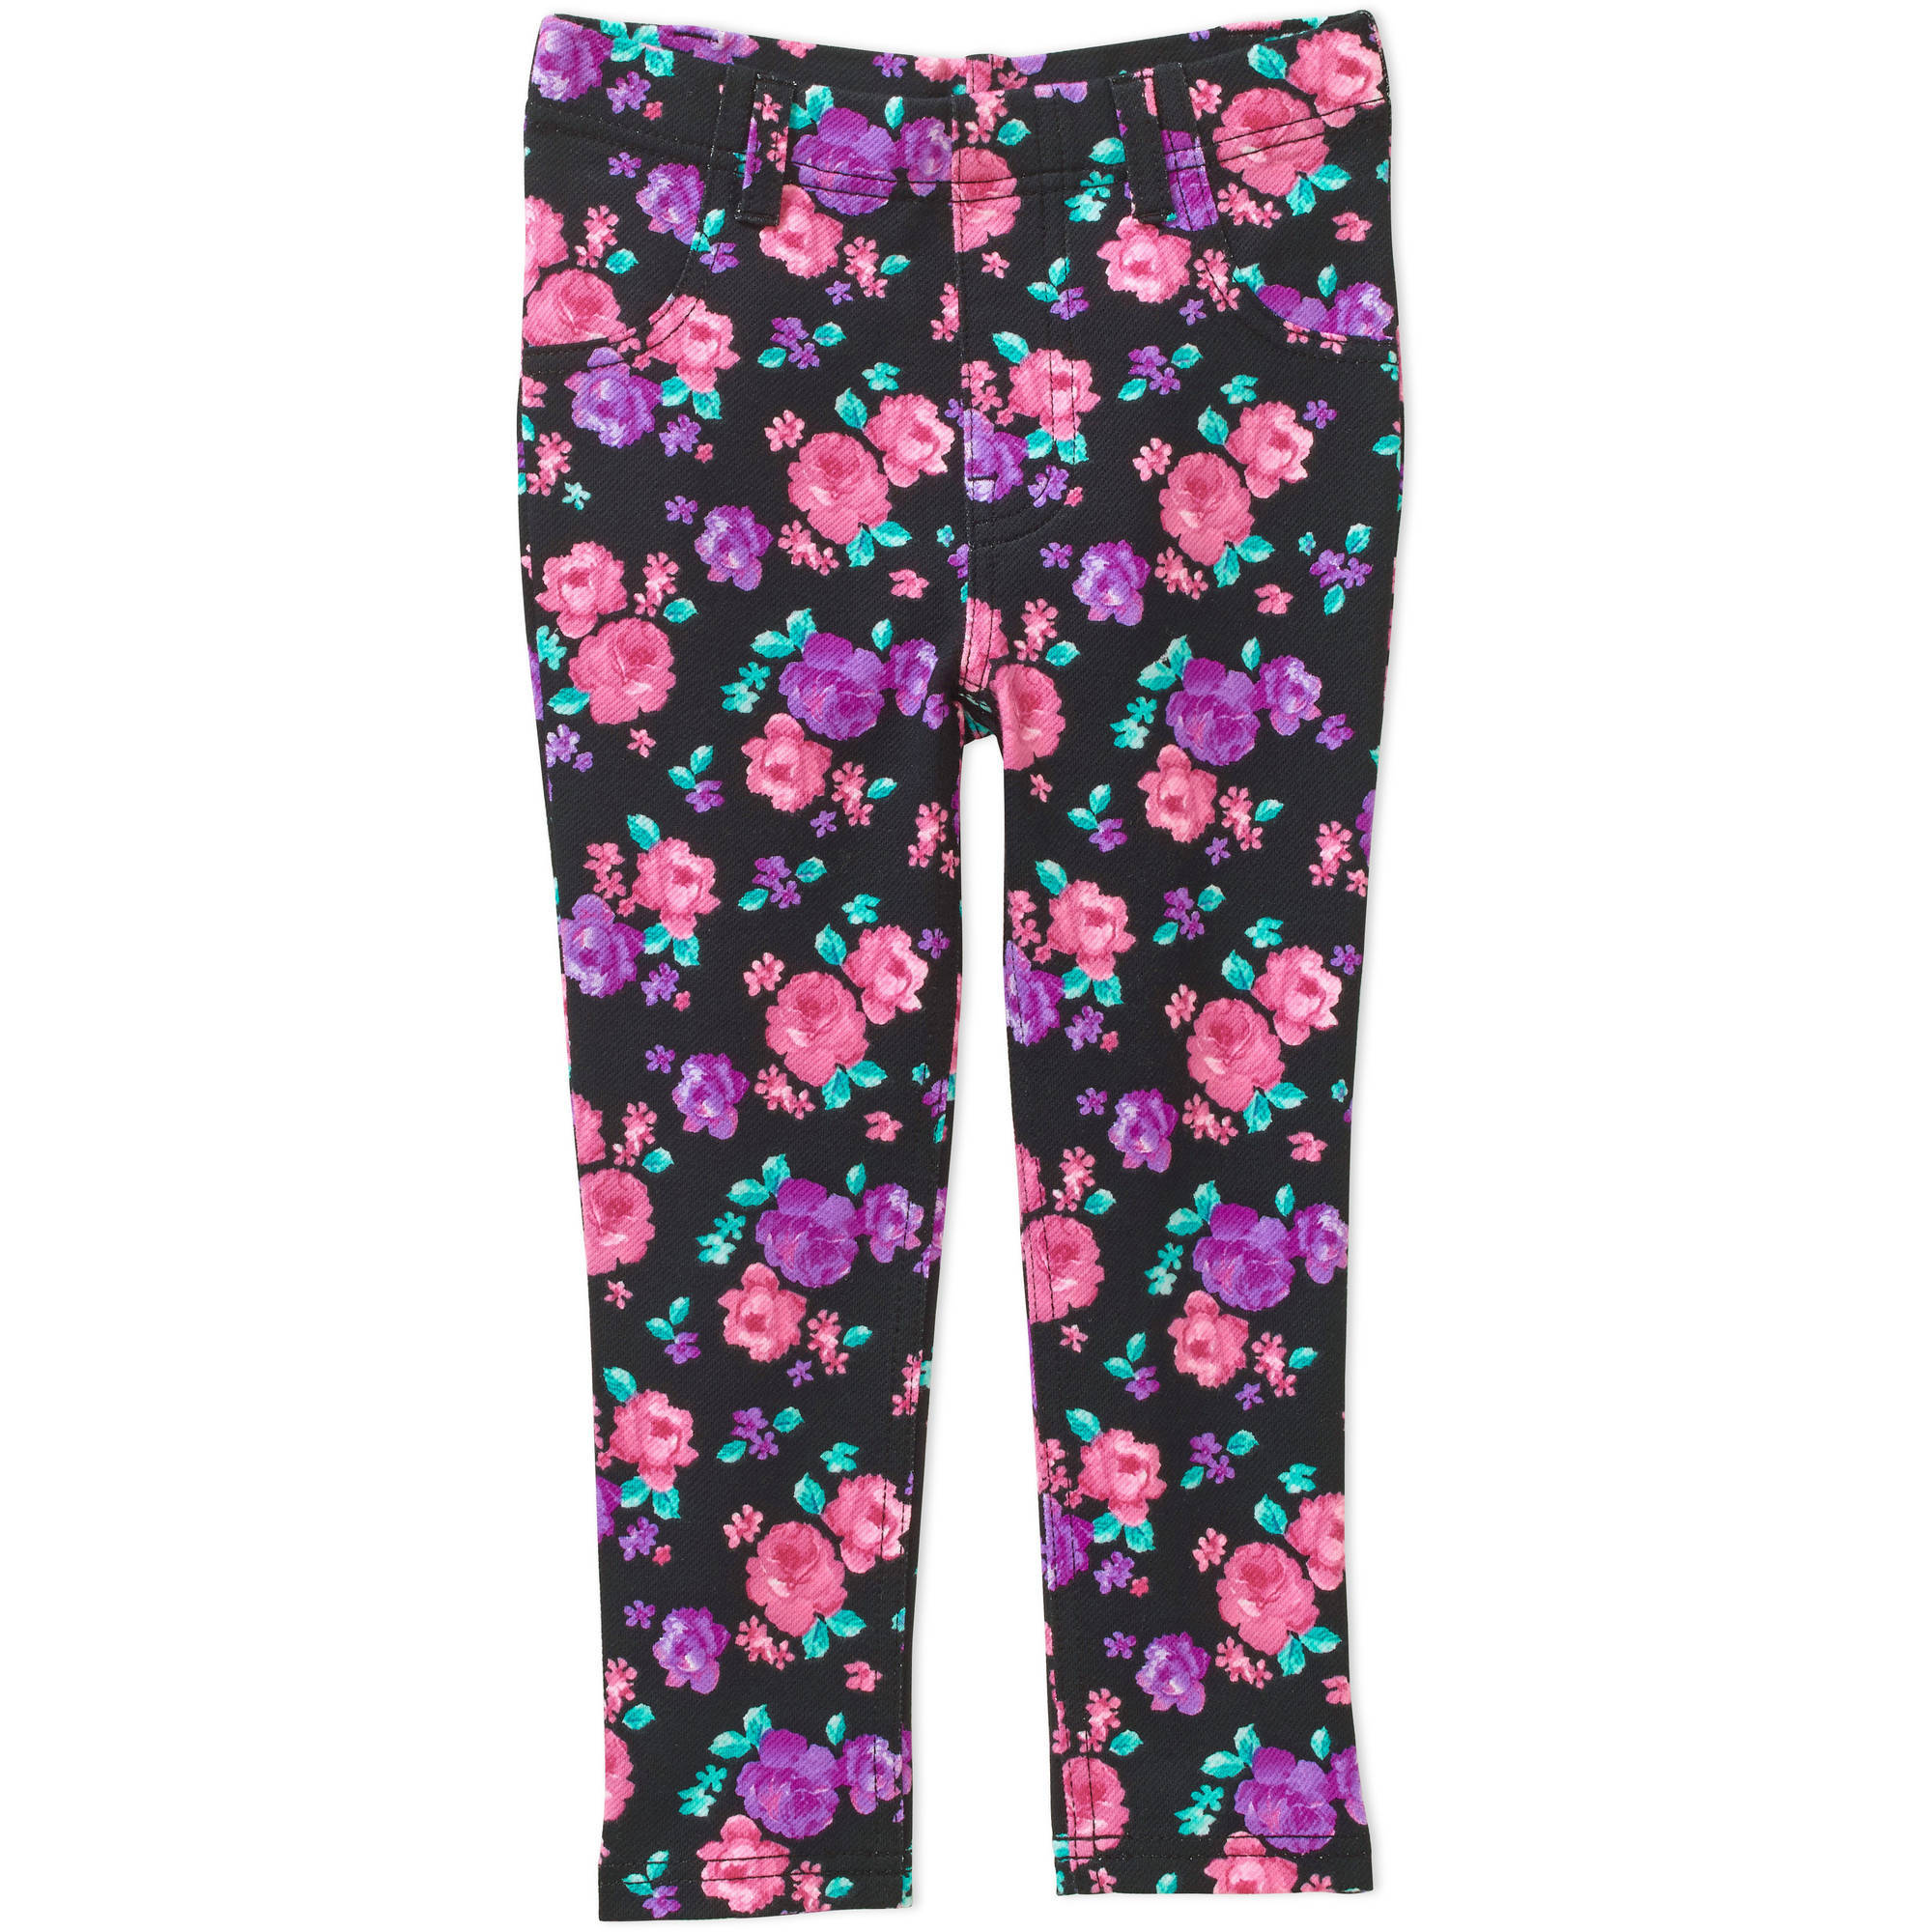 Garanimals Baby Toddler Girls' Printed Jeggings